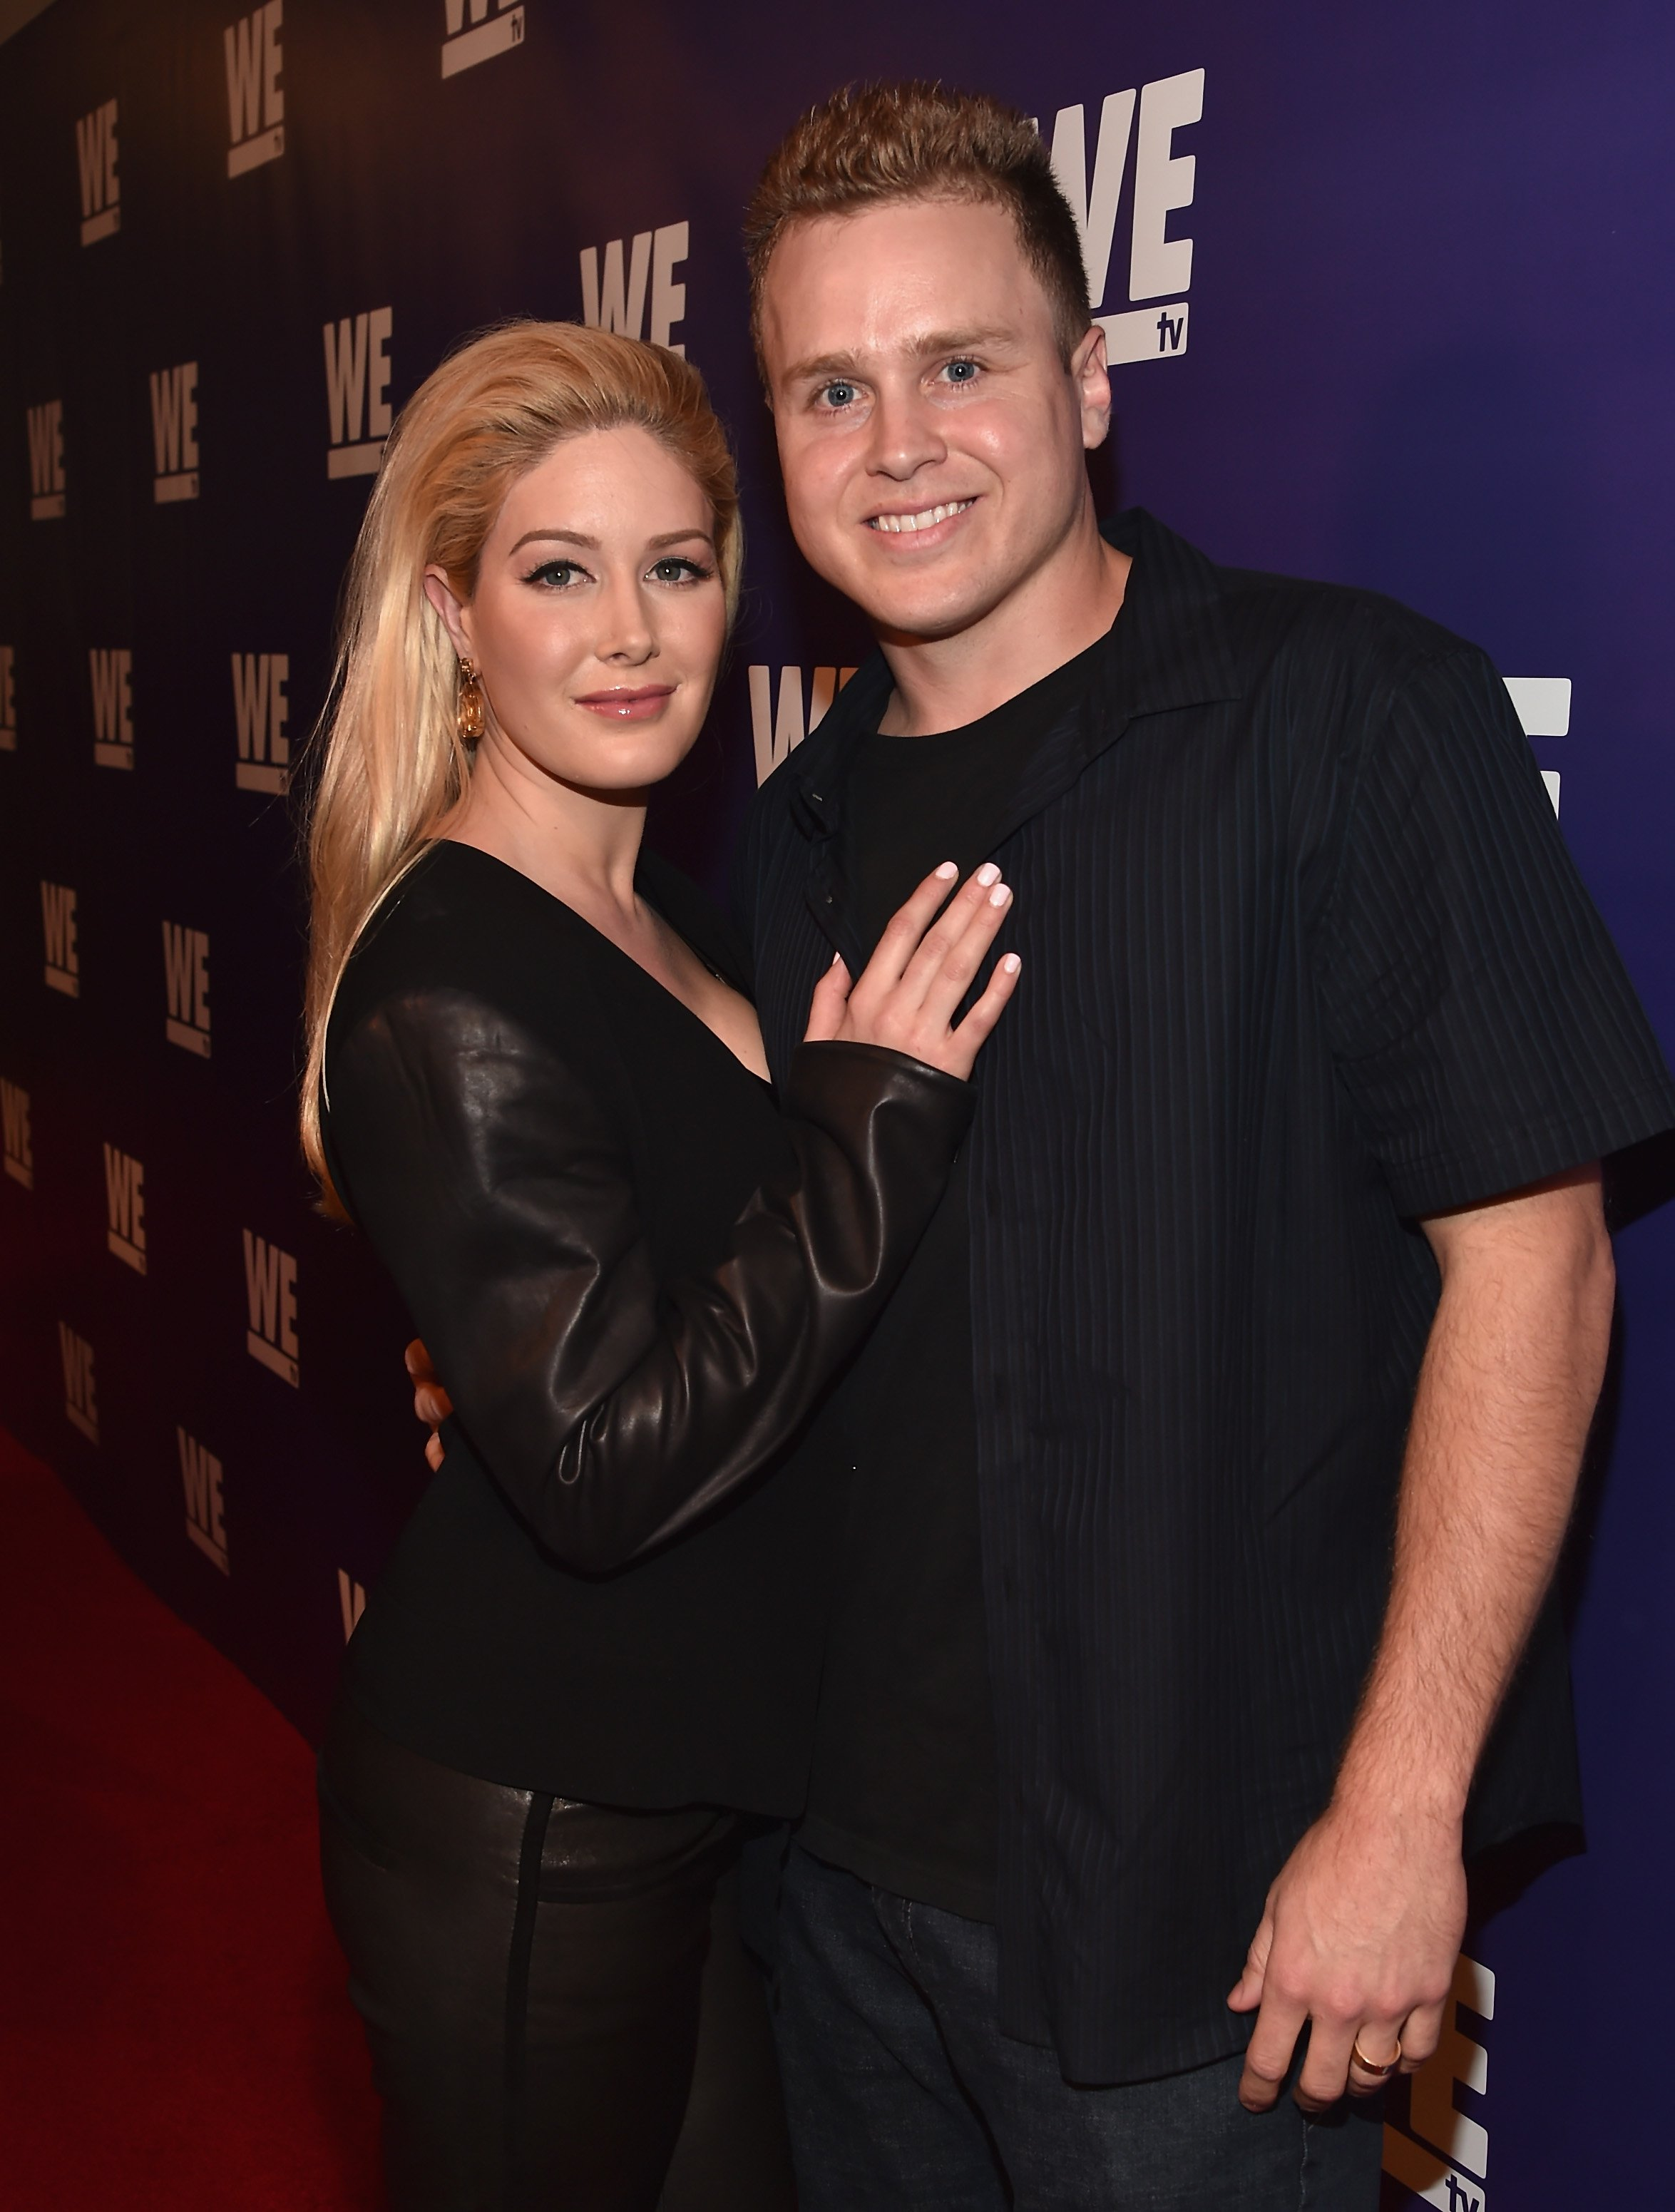 Spencer Pratt and Heidi Montag attend the WE tv presents 'The Evolution of The Relationship Reality Show' at The Paley Center for Media on March 19, 2015 in Beverly Hills